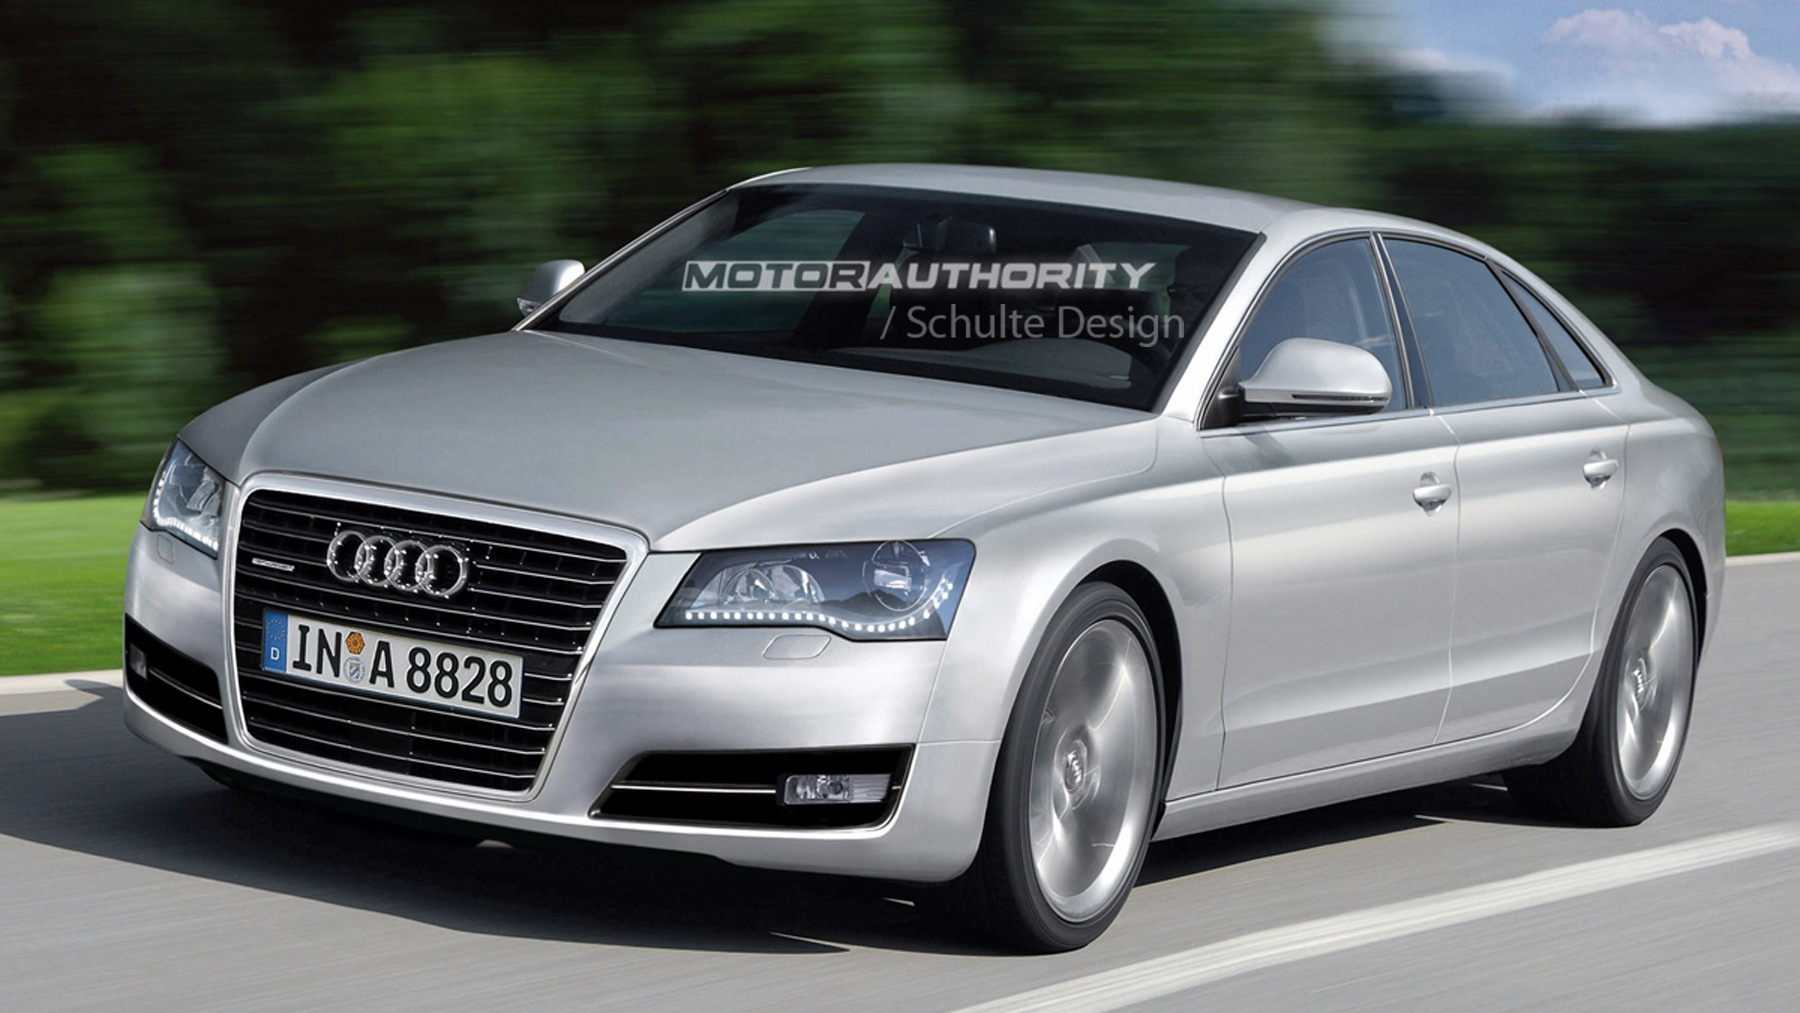 2011 audi a8 preview rendering 001